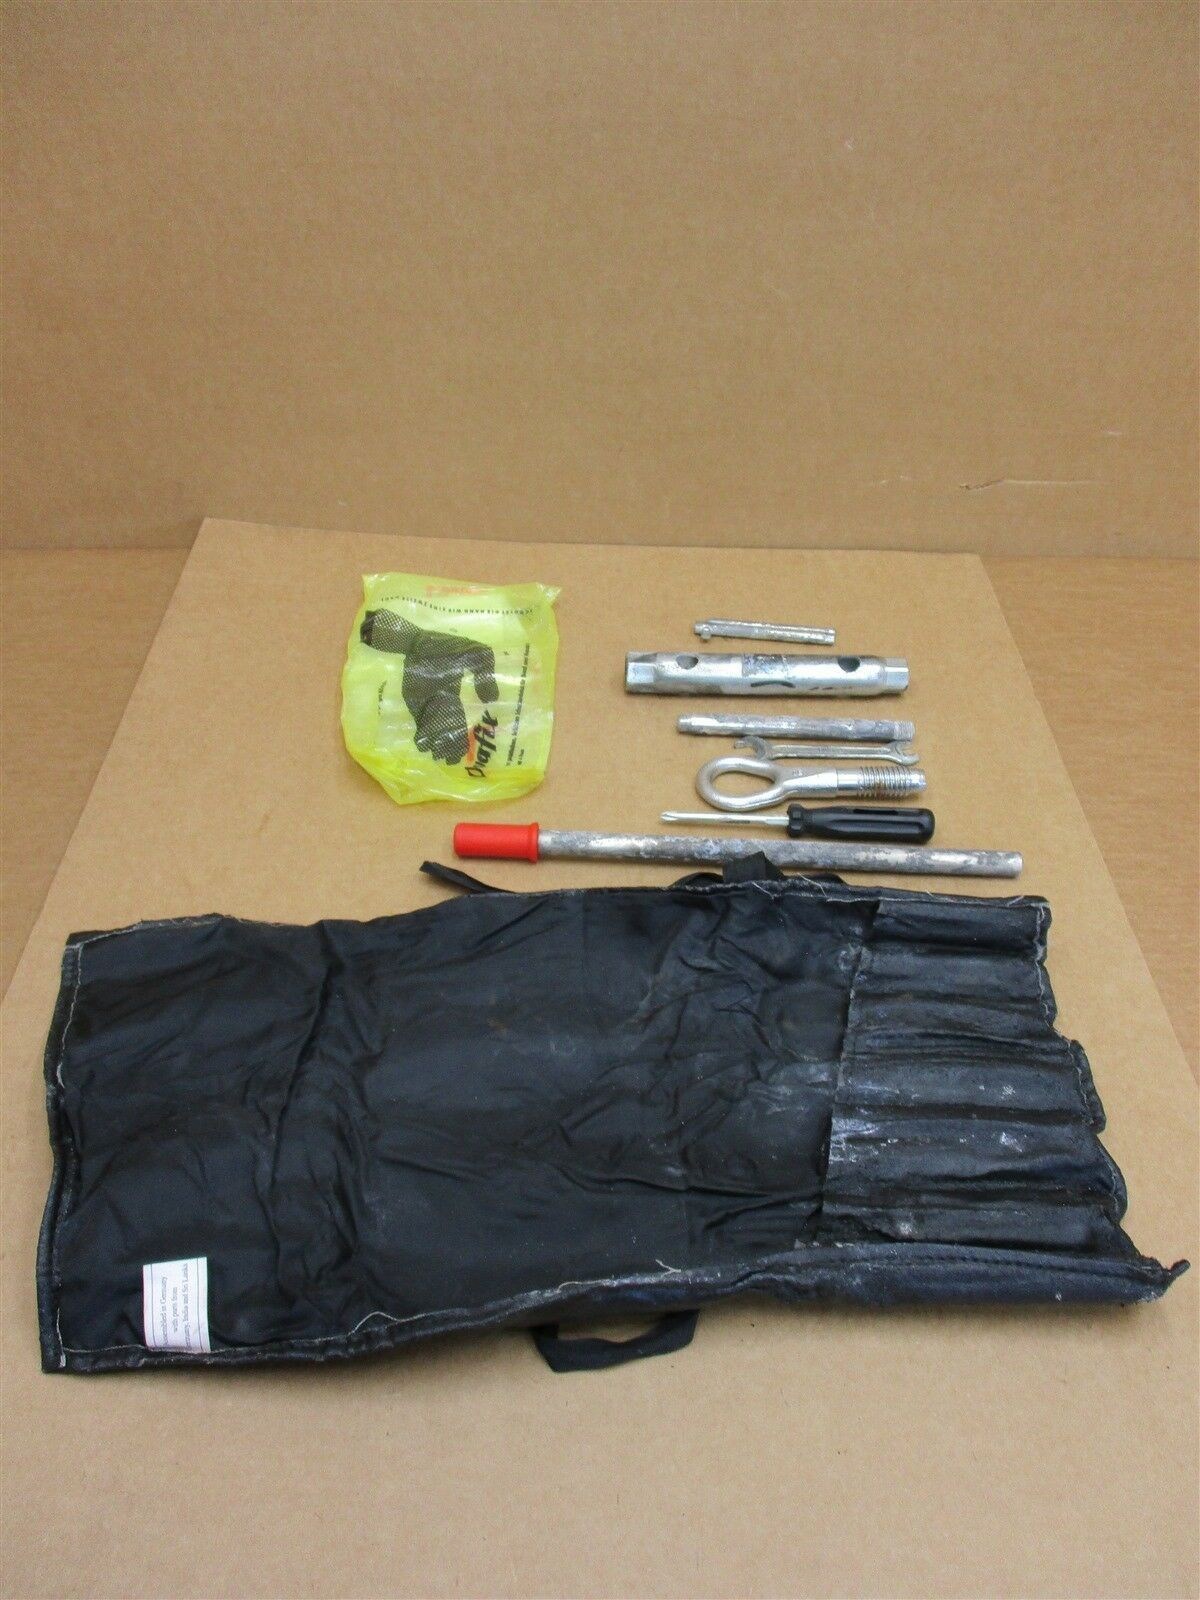 02 Boxster S RWD Porsche 986 TOOL SET + Black BAG Wrench 49,293